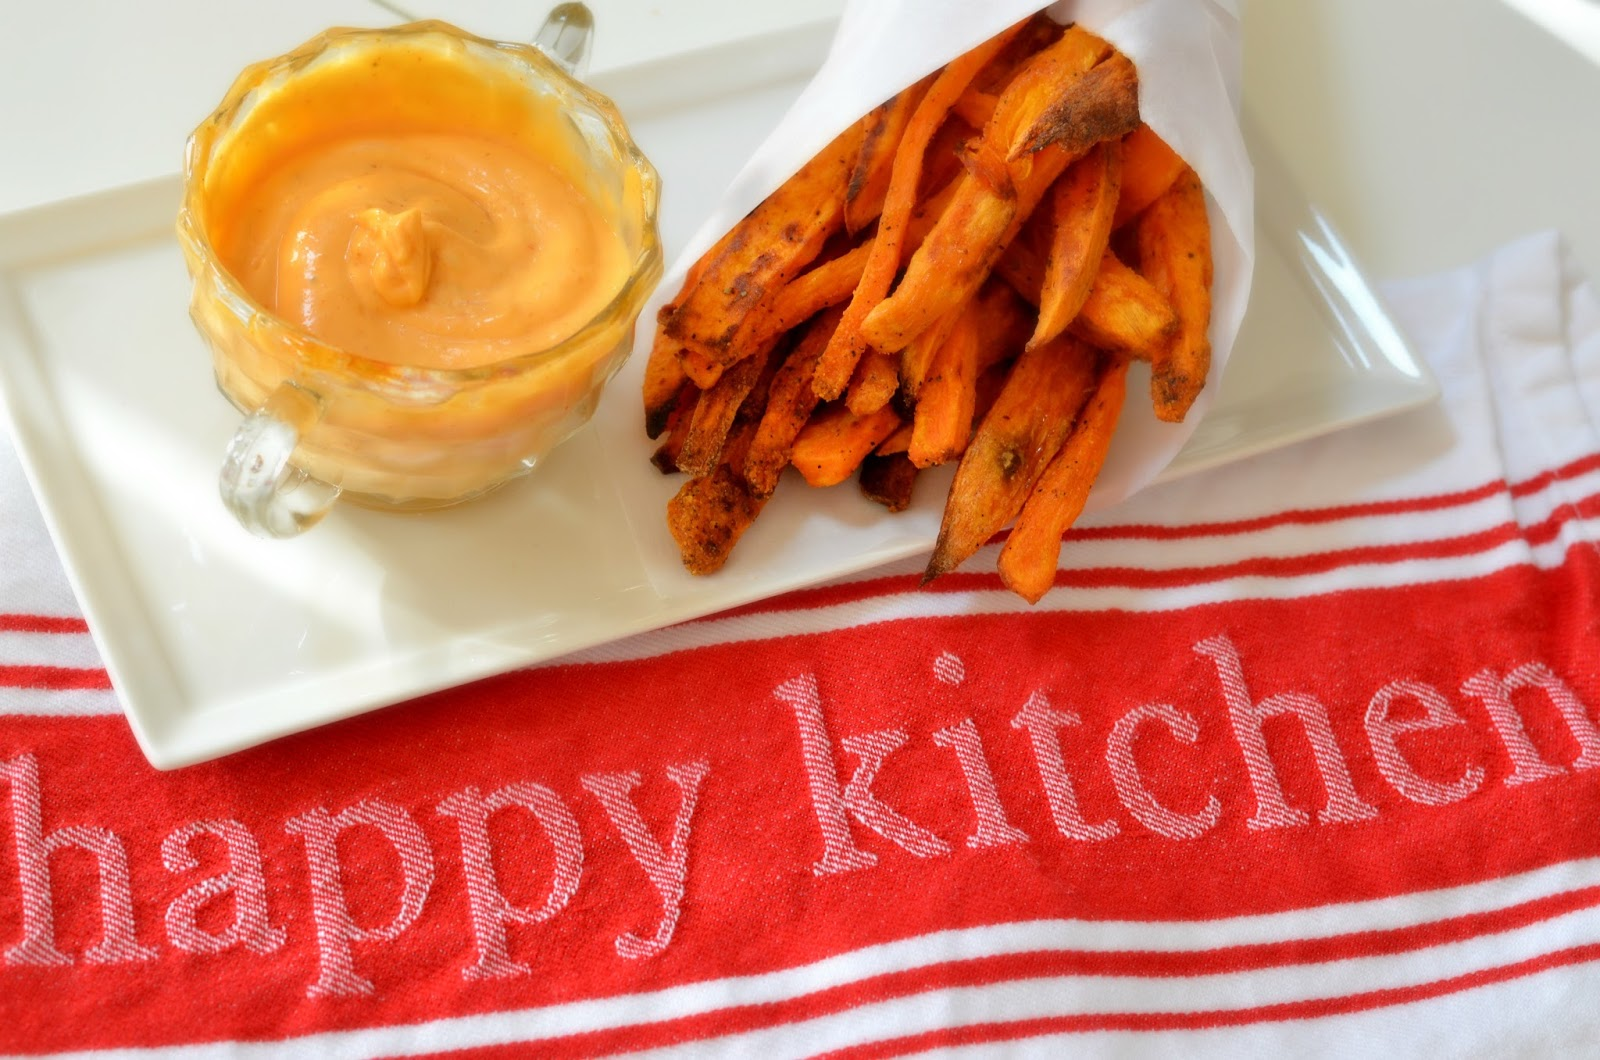 Oven-Baked-Truffle-Sweet-Potato-Fries-With-Spicy-Mayo-Dipping-Sauce